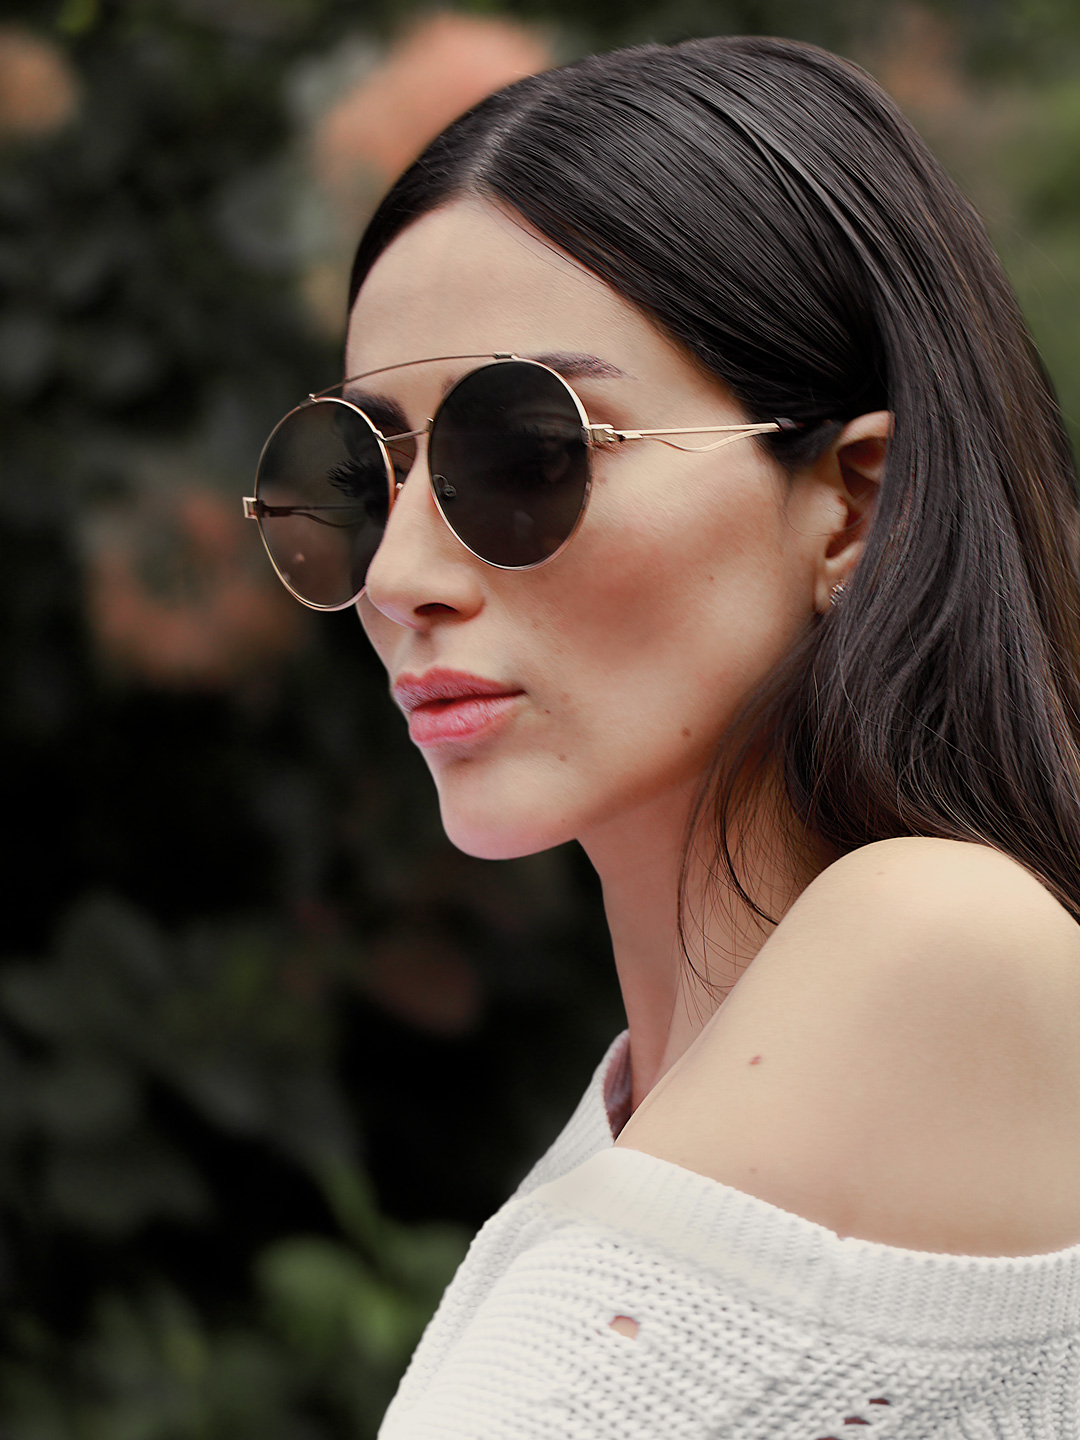 French Photographer Fashion Photography Givenchy Women's Sunglasses